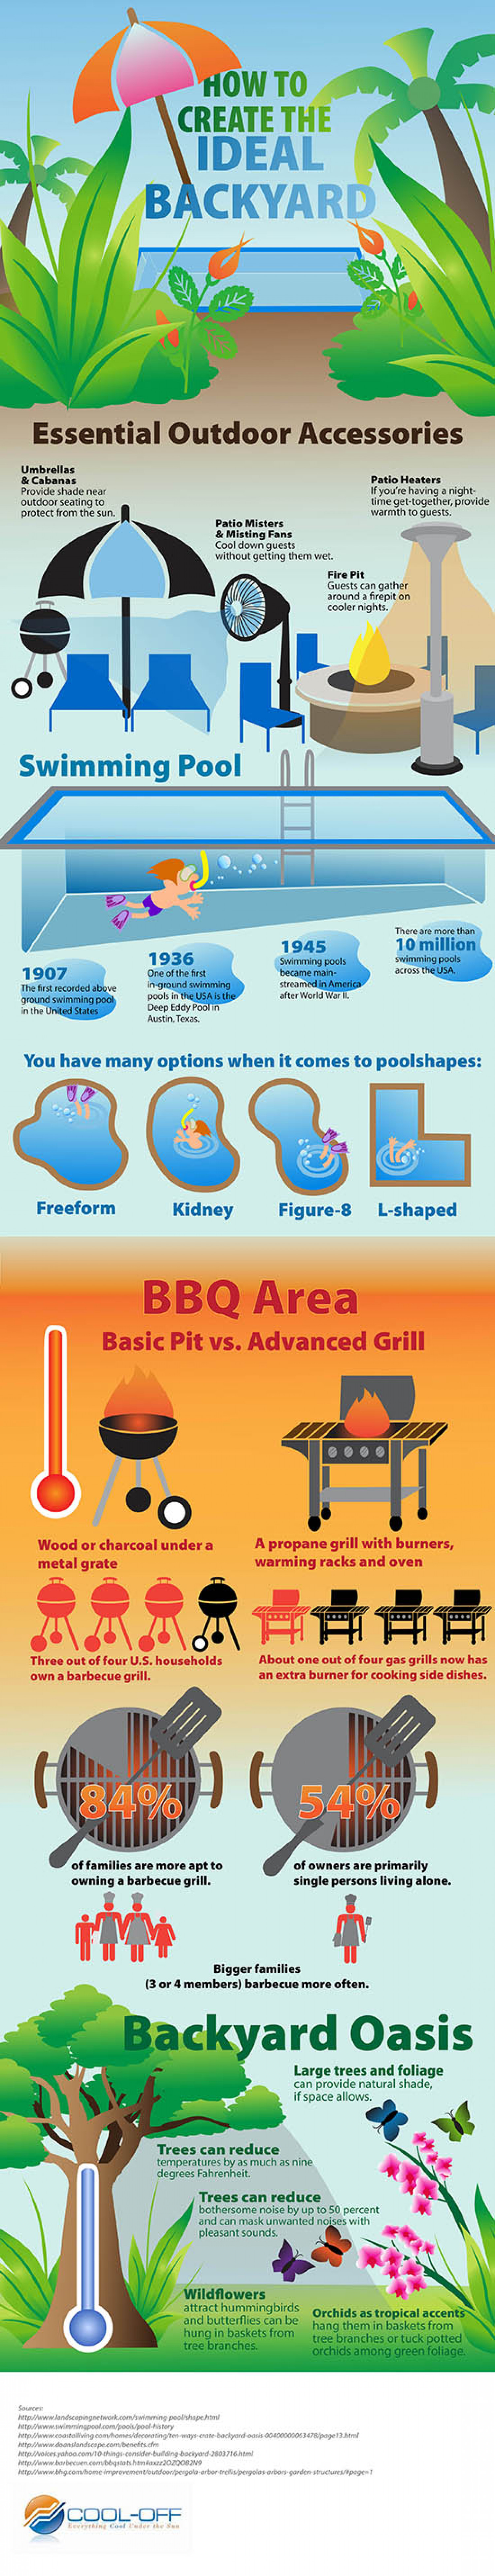 How to Create the Ideal Backyard Infographic